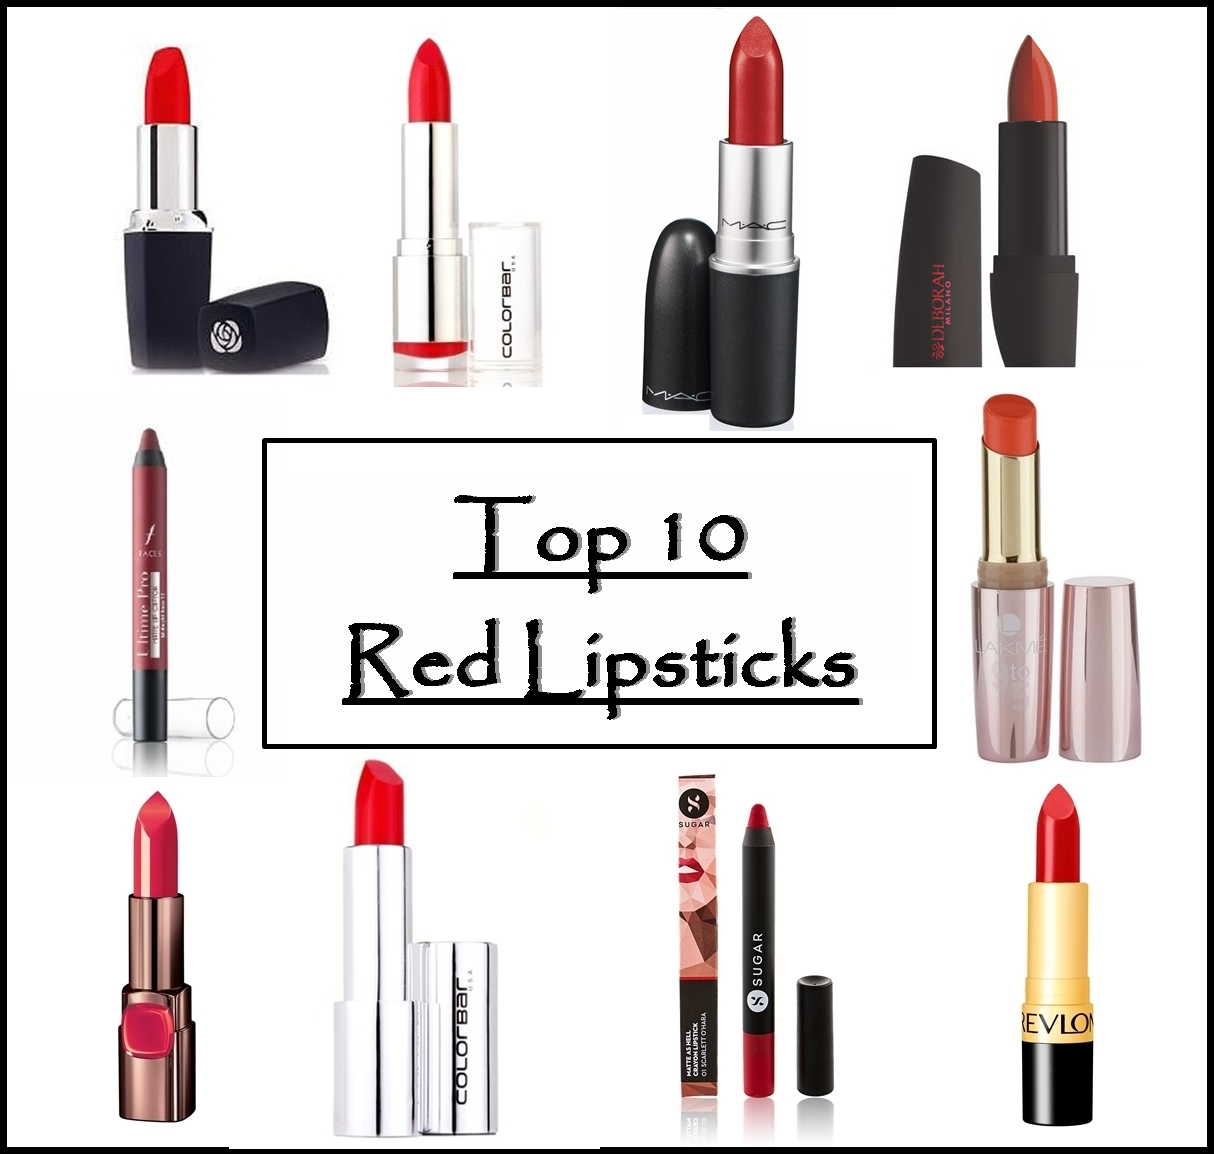 Top 10 Matte Red Lipsticks for Indian Skin, Prices, Buy Online ...